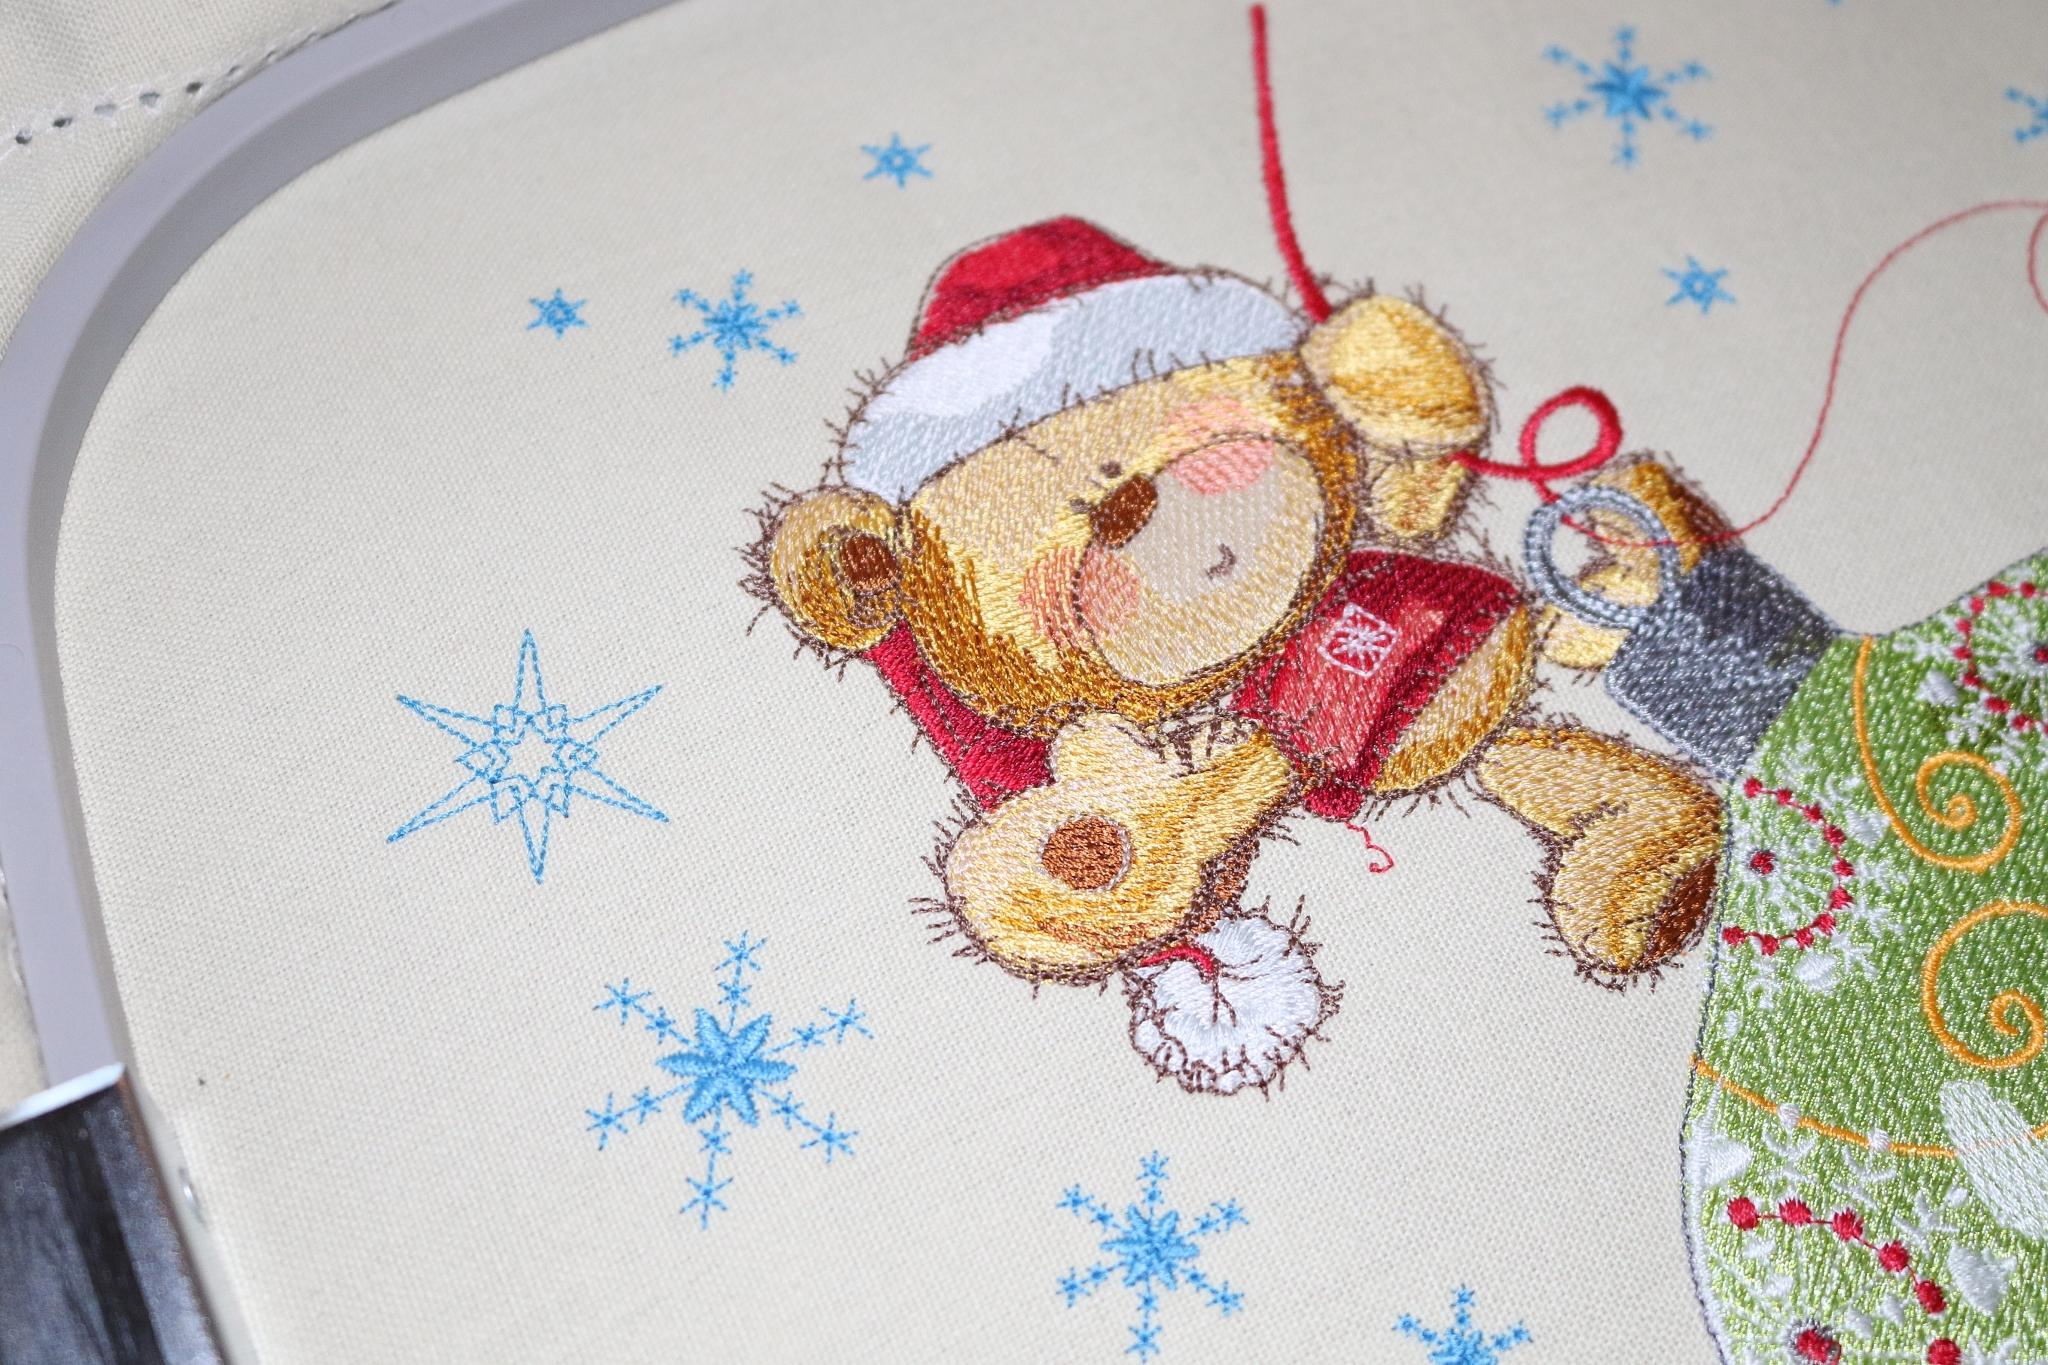 Teddy bear on Christmas ball design on hoop